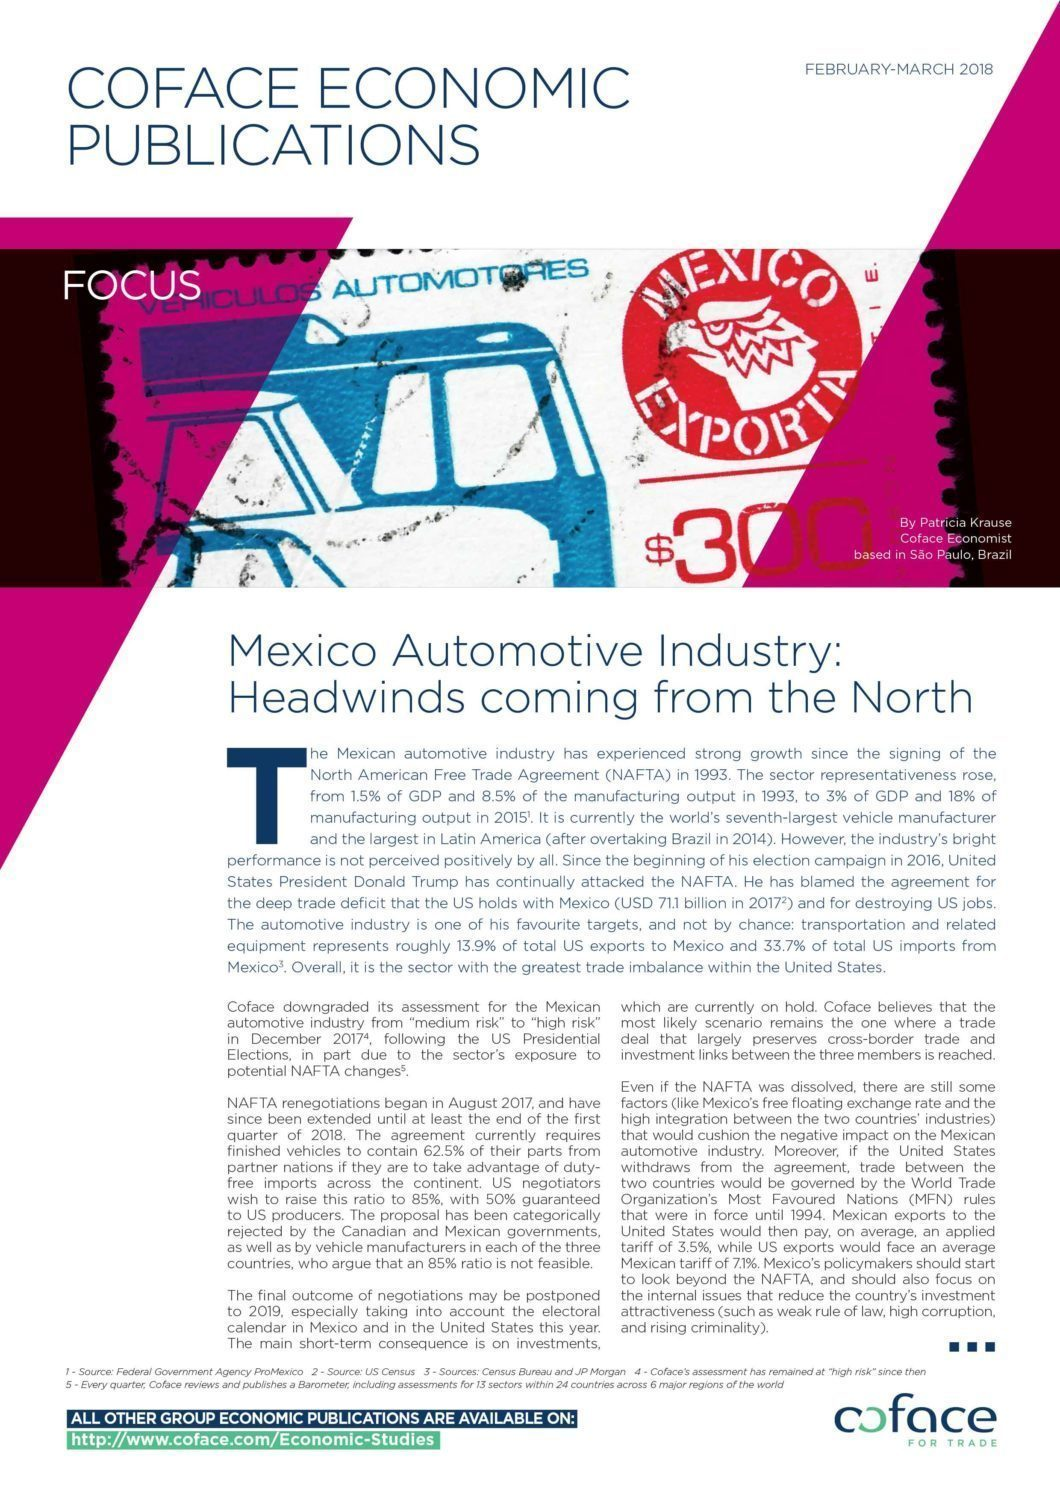 Mexico Automotive Industry: Headwinds coming from the North